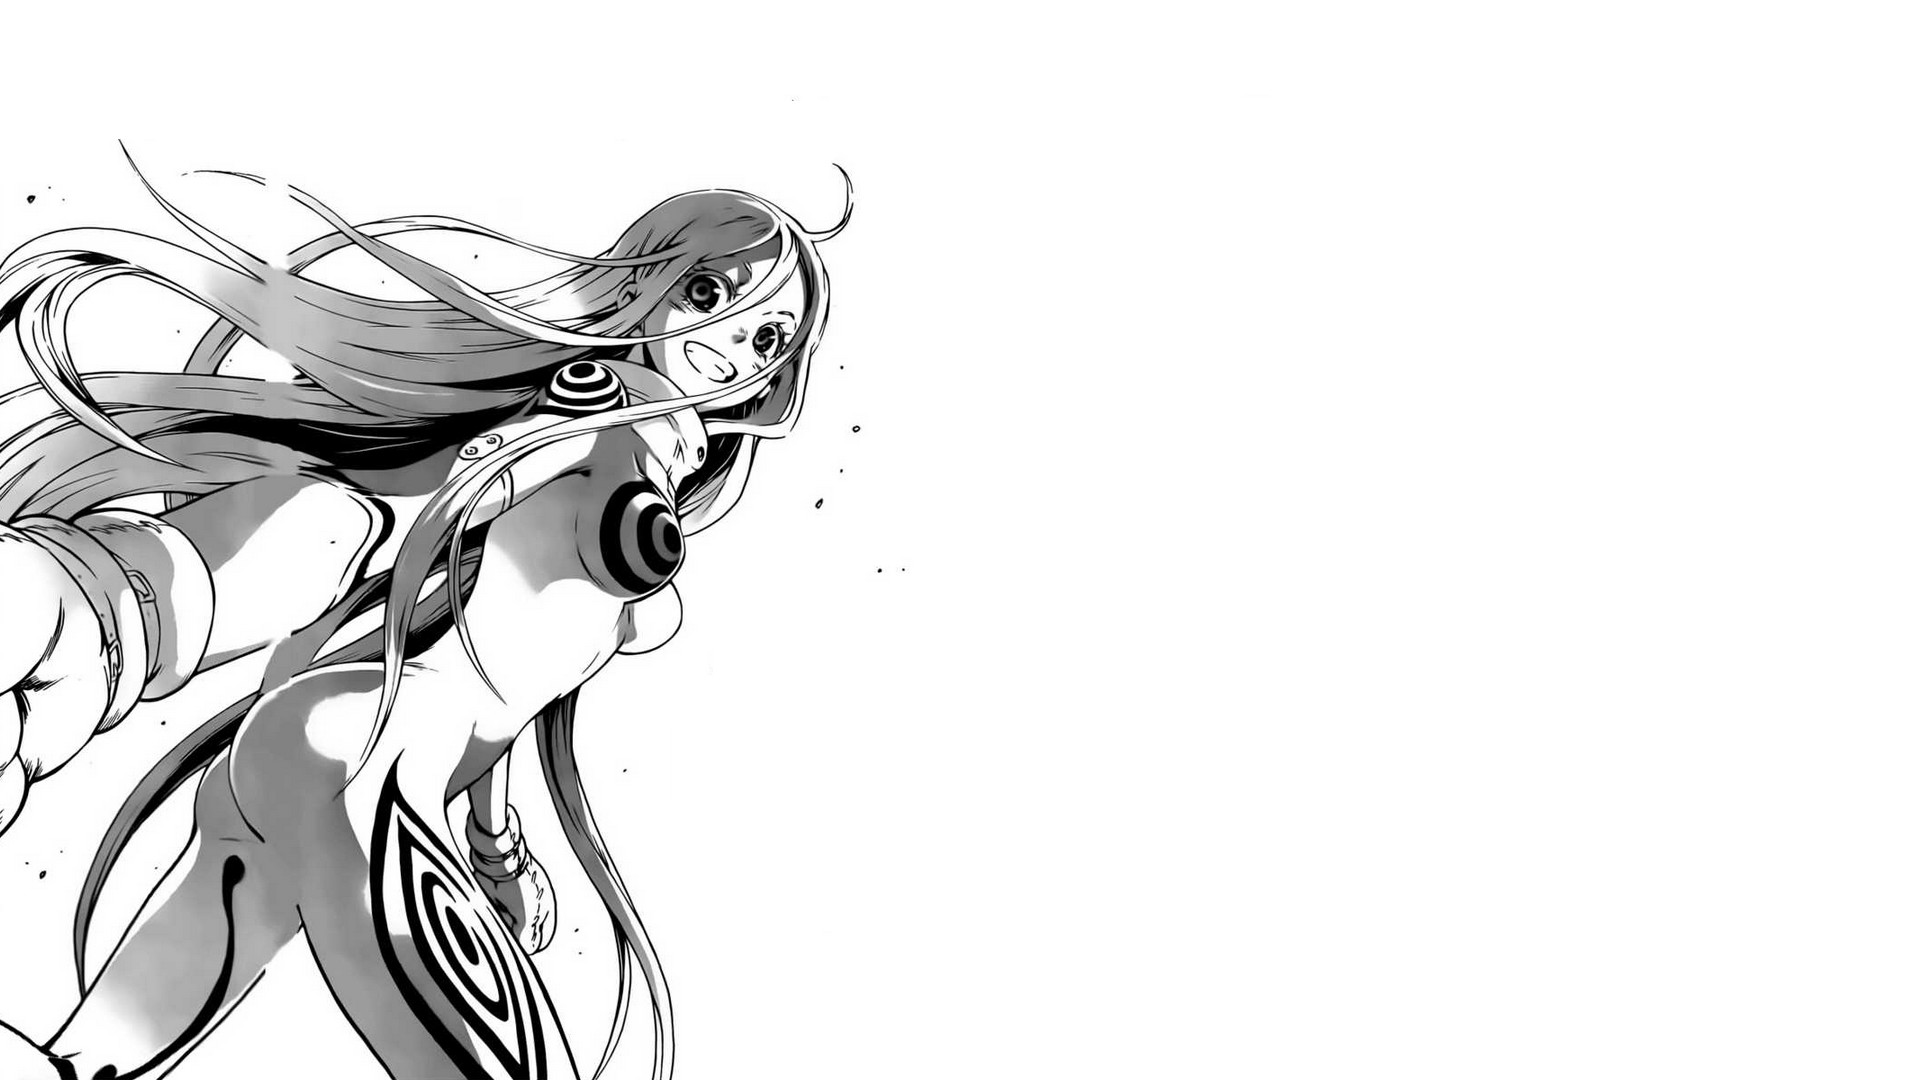 1920x1080 deadman wonderland wallpaper #690024